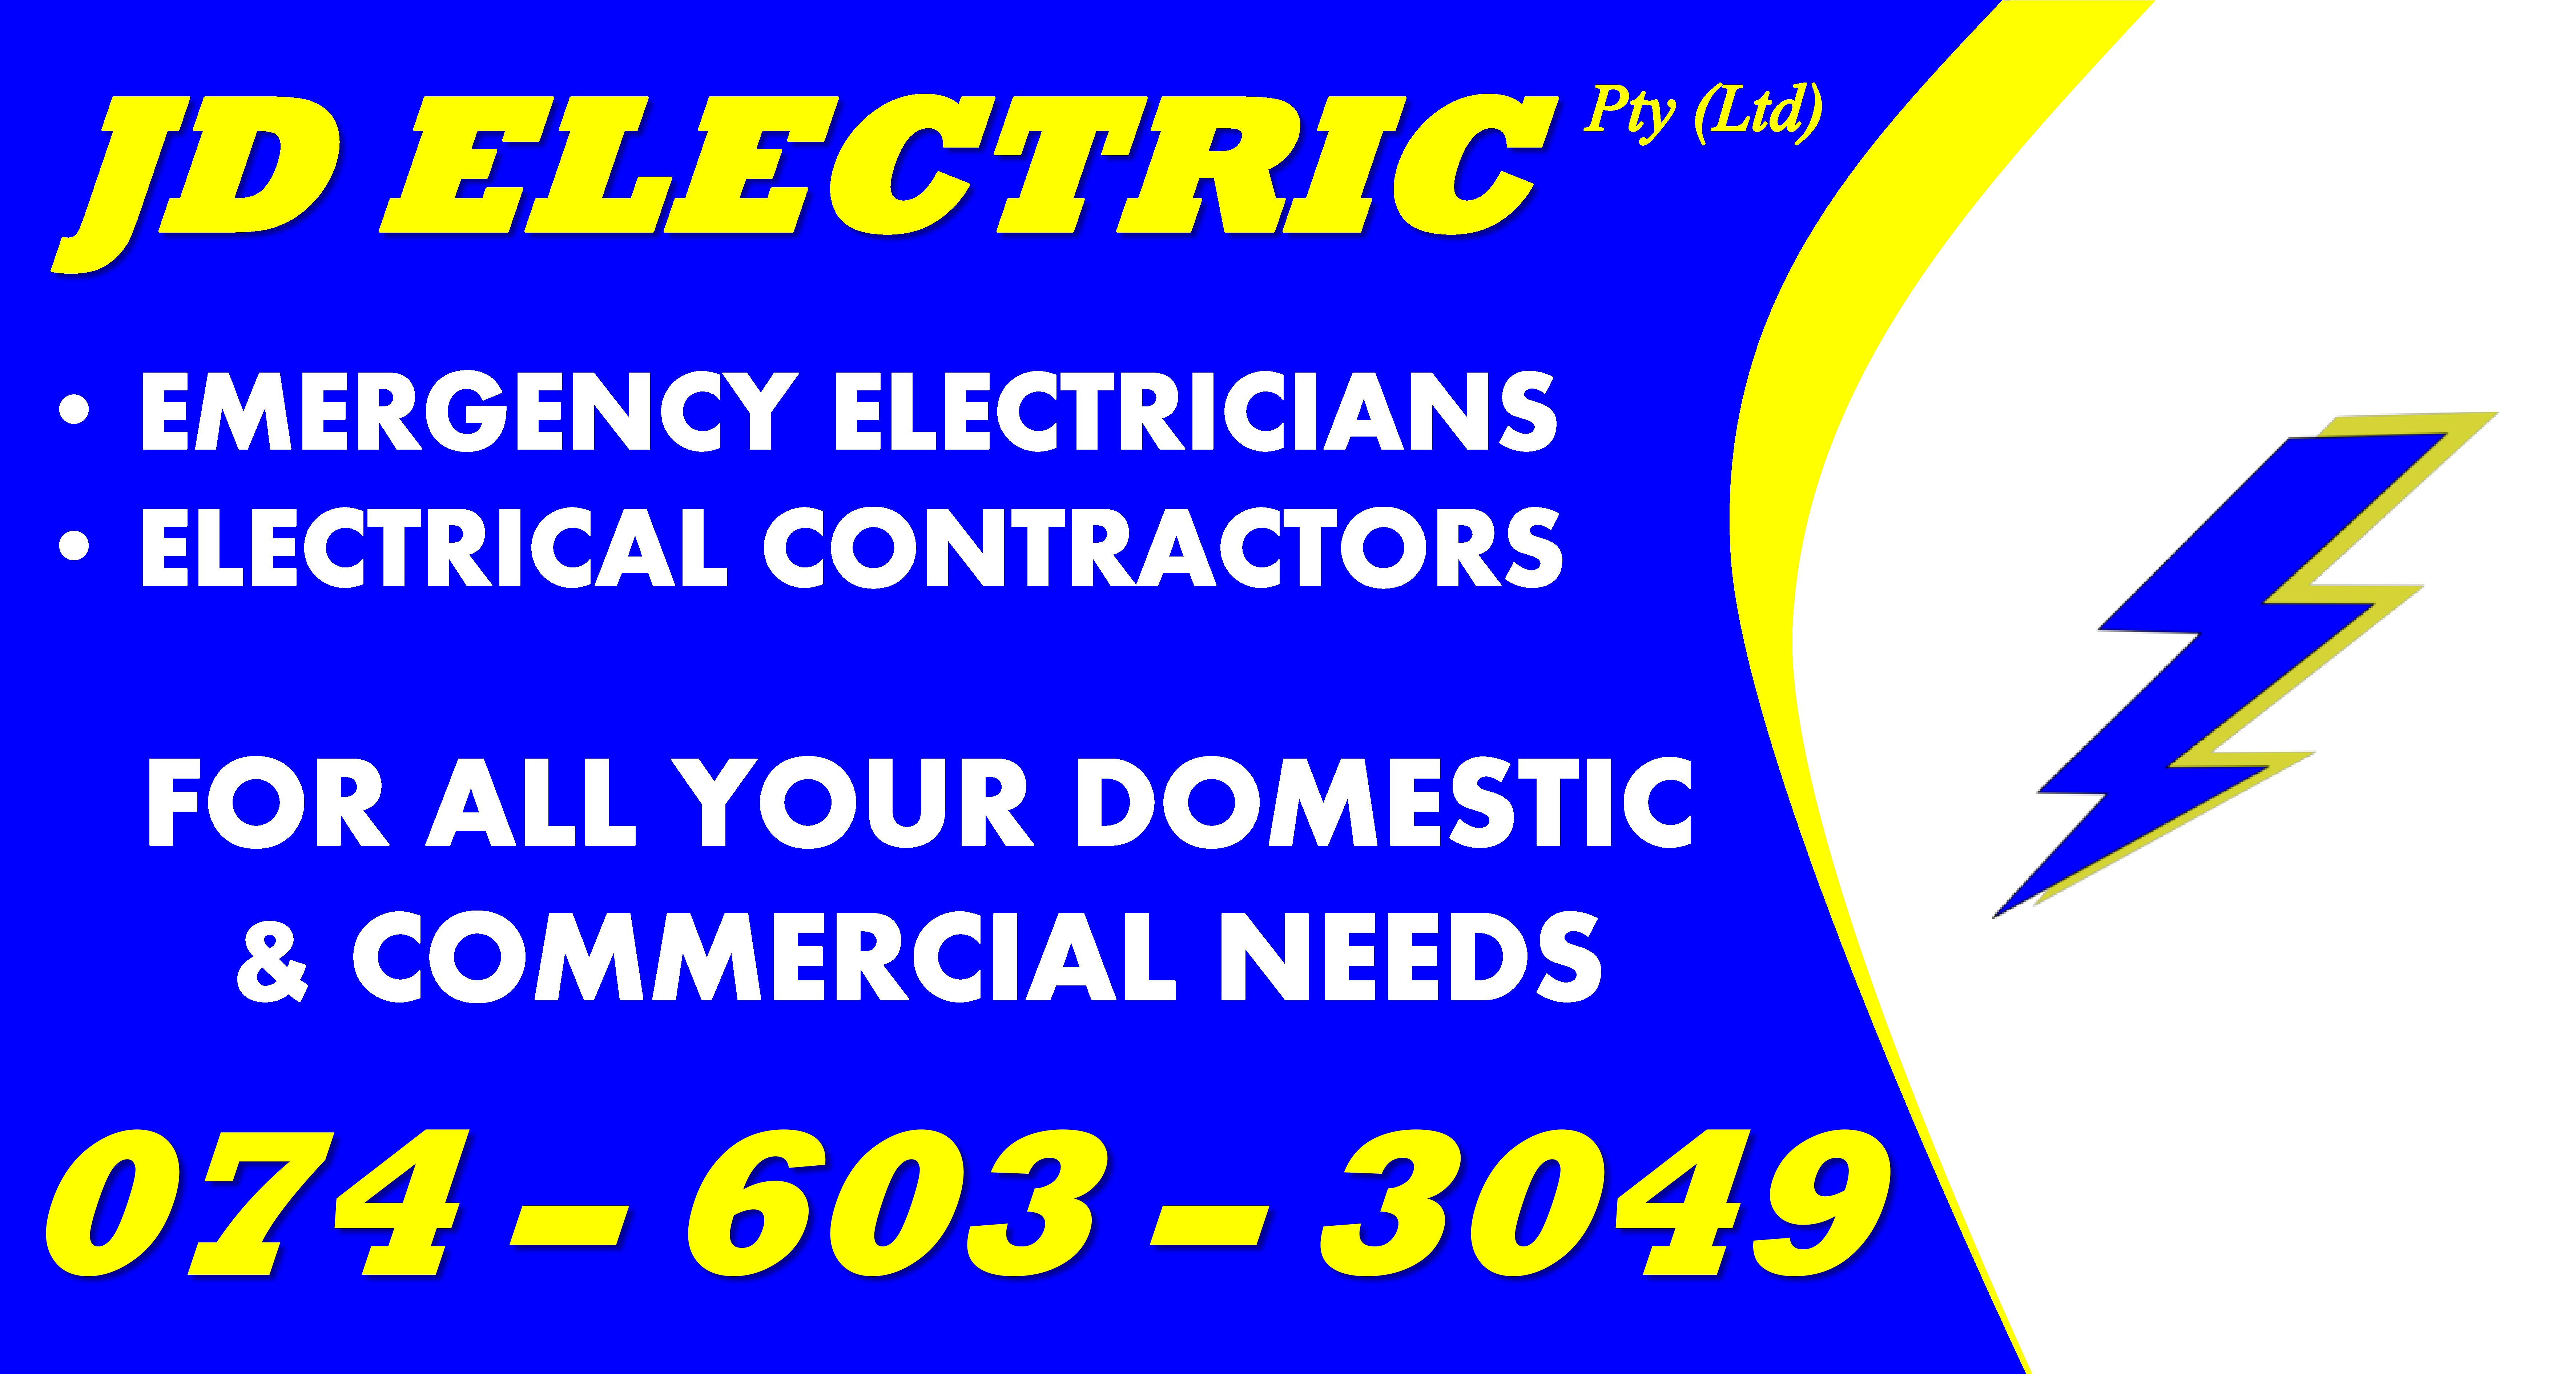 JD Electric (Pty) Ltd